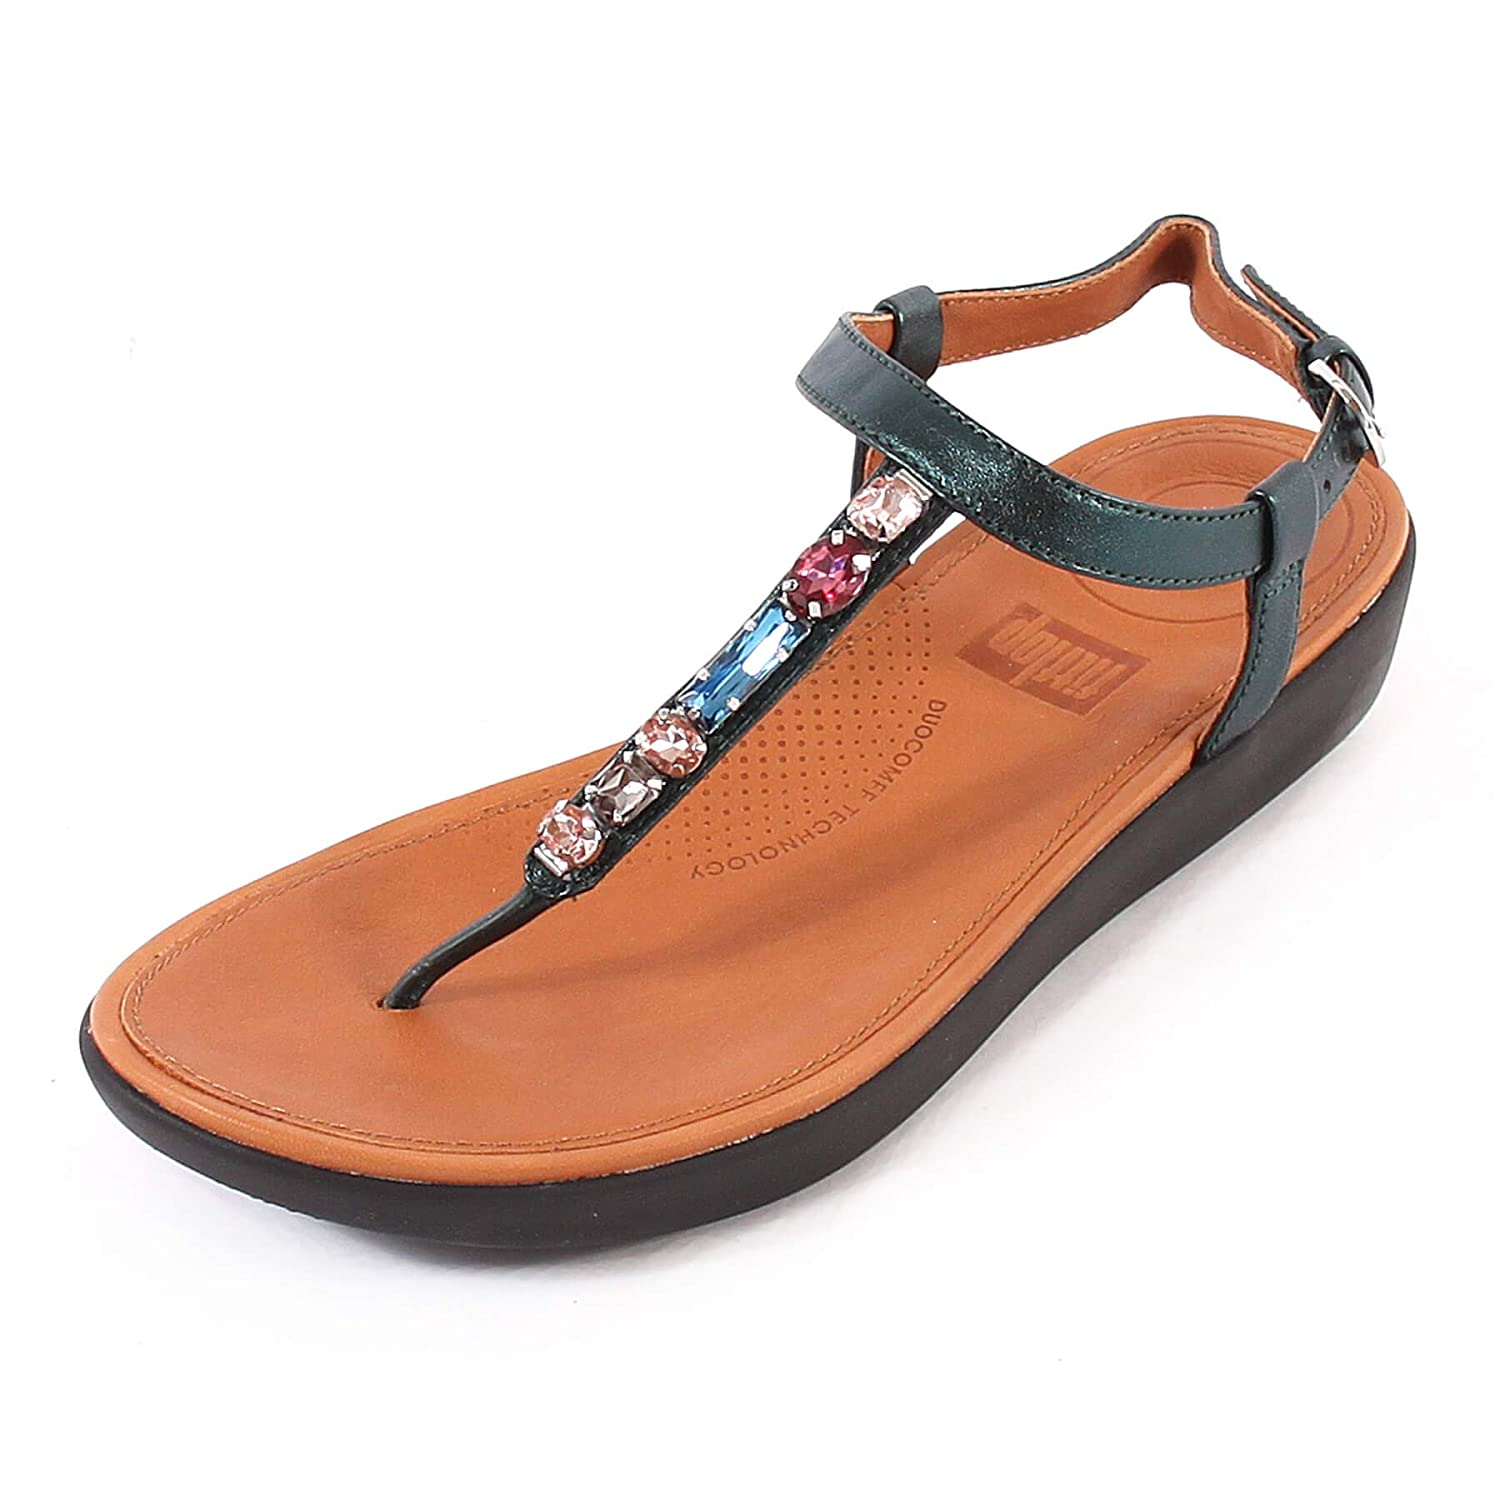 39d913597 Fitflop tia bewjewelled sandals shoes bags jpg 1500x1500 Fitflop shoes foot